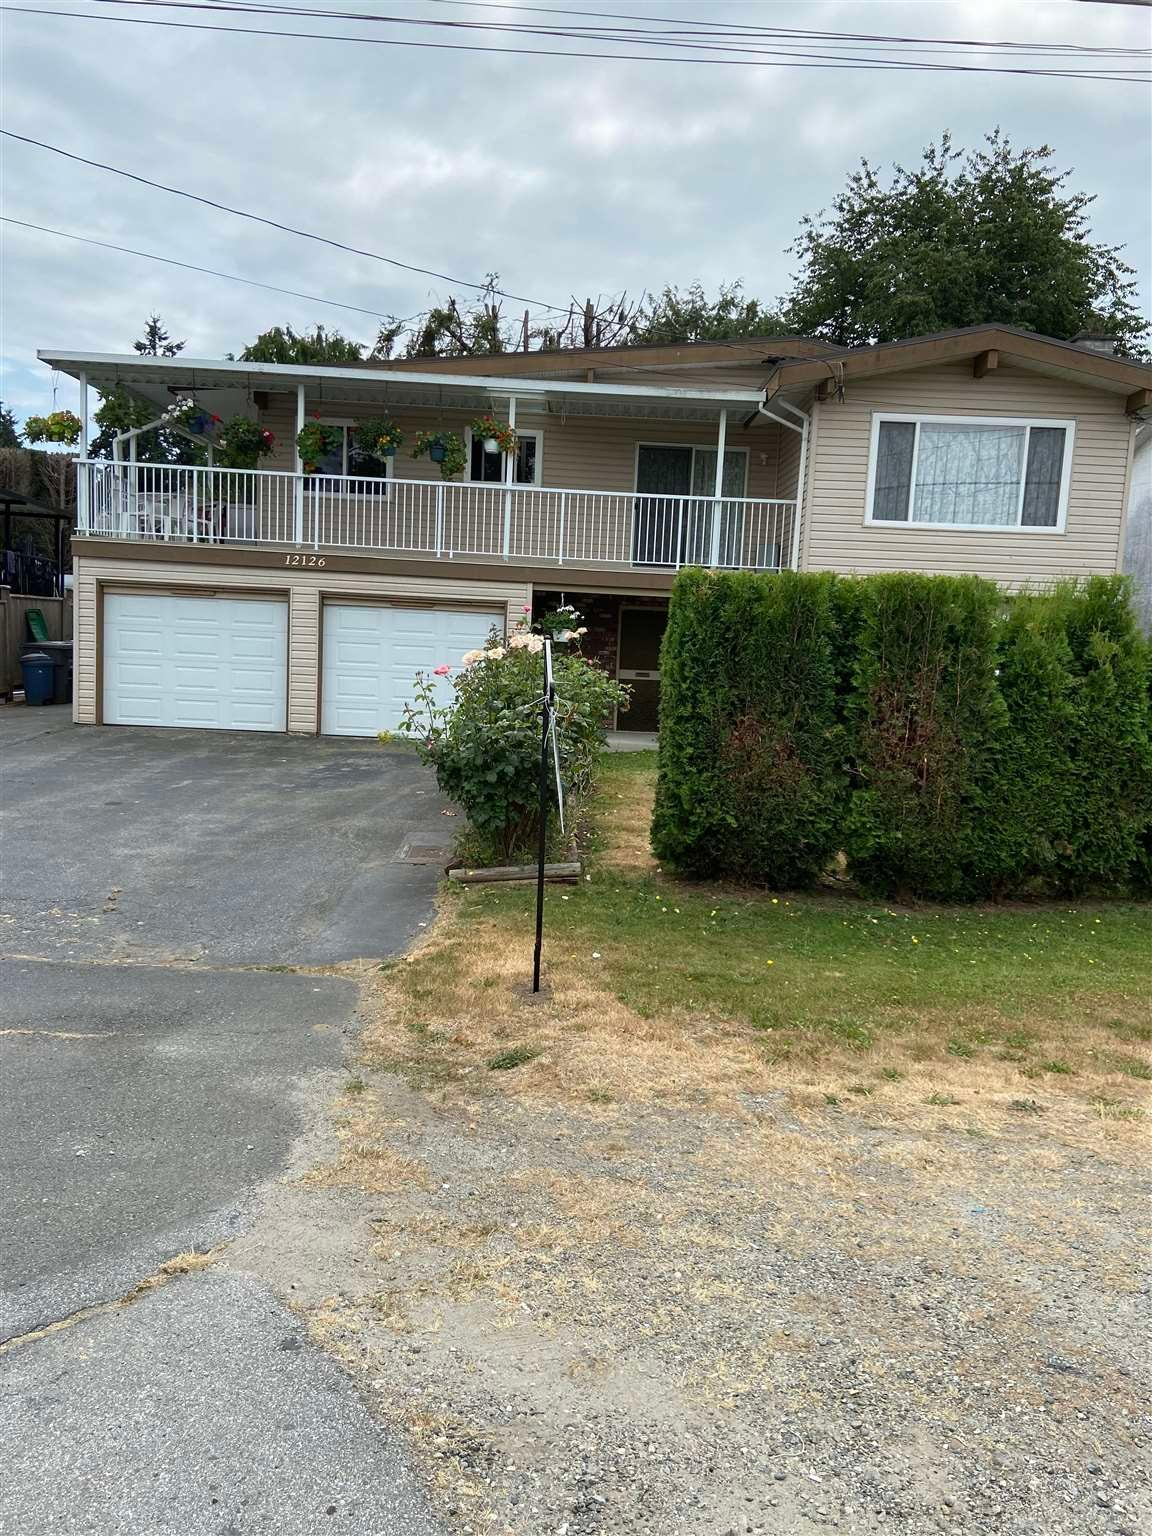 12126 95A AVENUE - Queen Mary Park Surrey House/Single Family for sale, 5 Bedrooms (R2599976) - #1